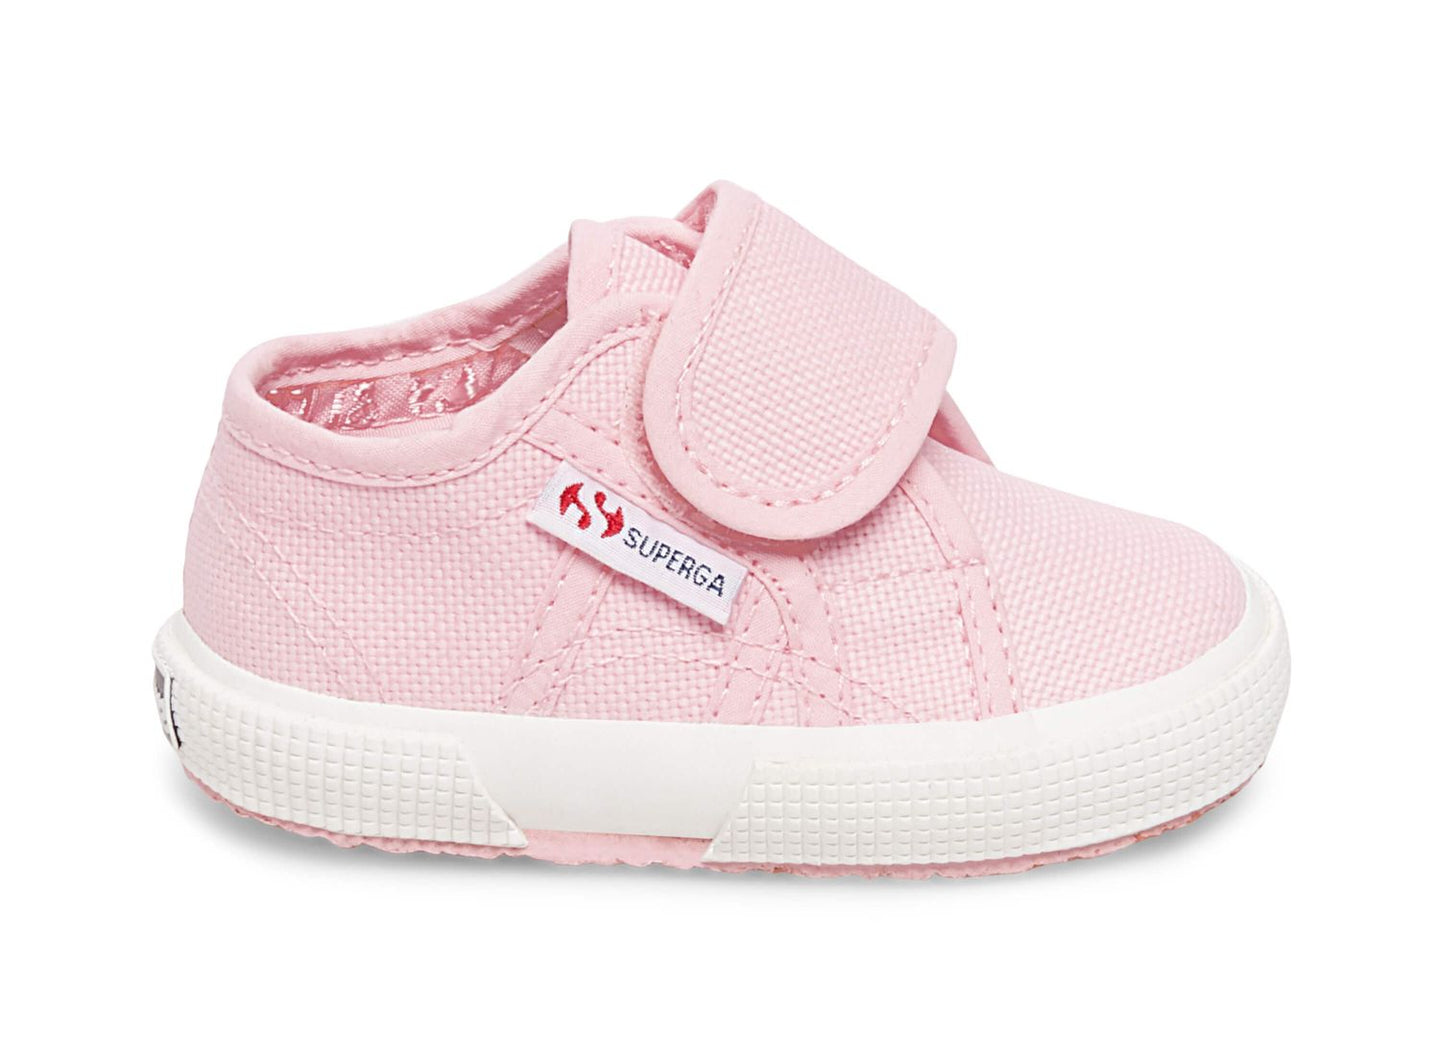 2750 BVEL CLASSIC PINK - Baby